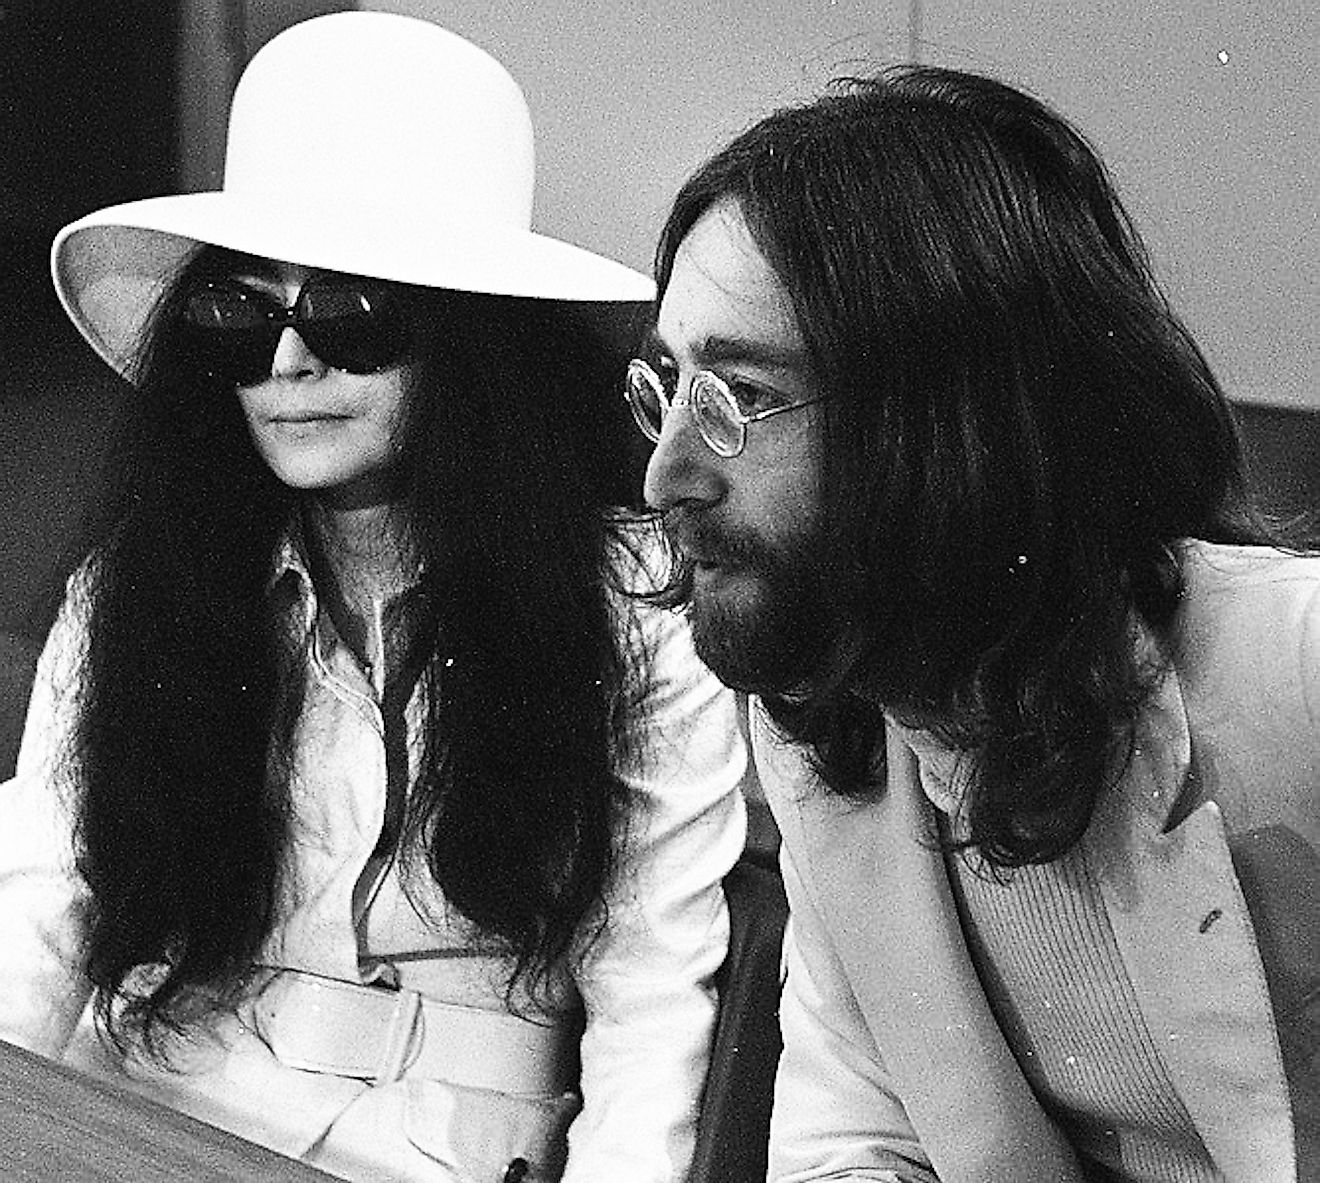 Yoko Ono and Lennon in March 1969. Image credit: Joost Evers/Anefo